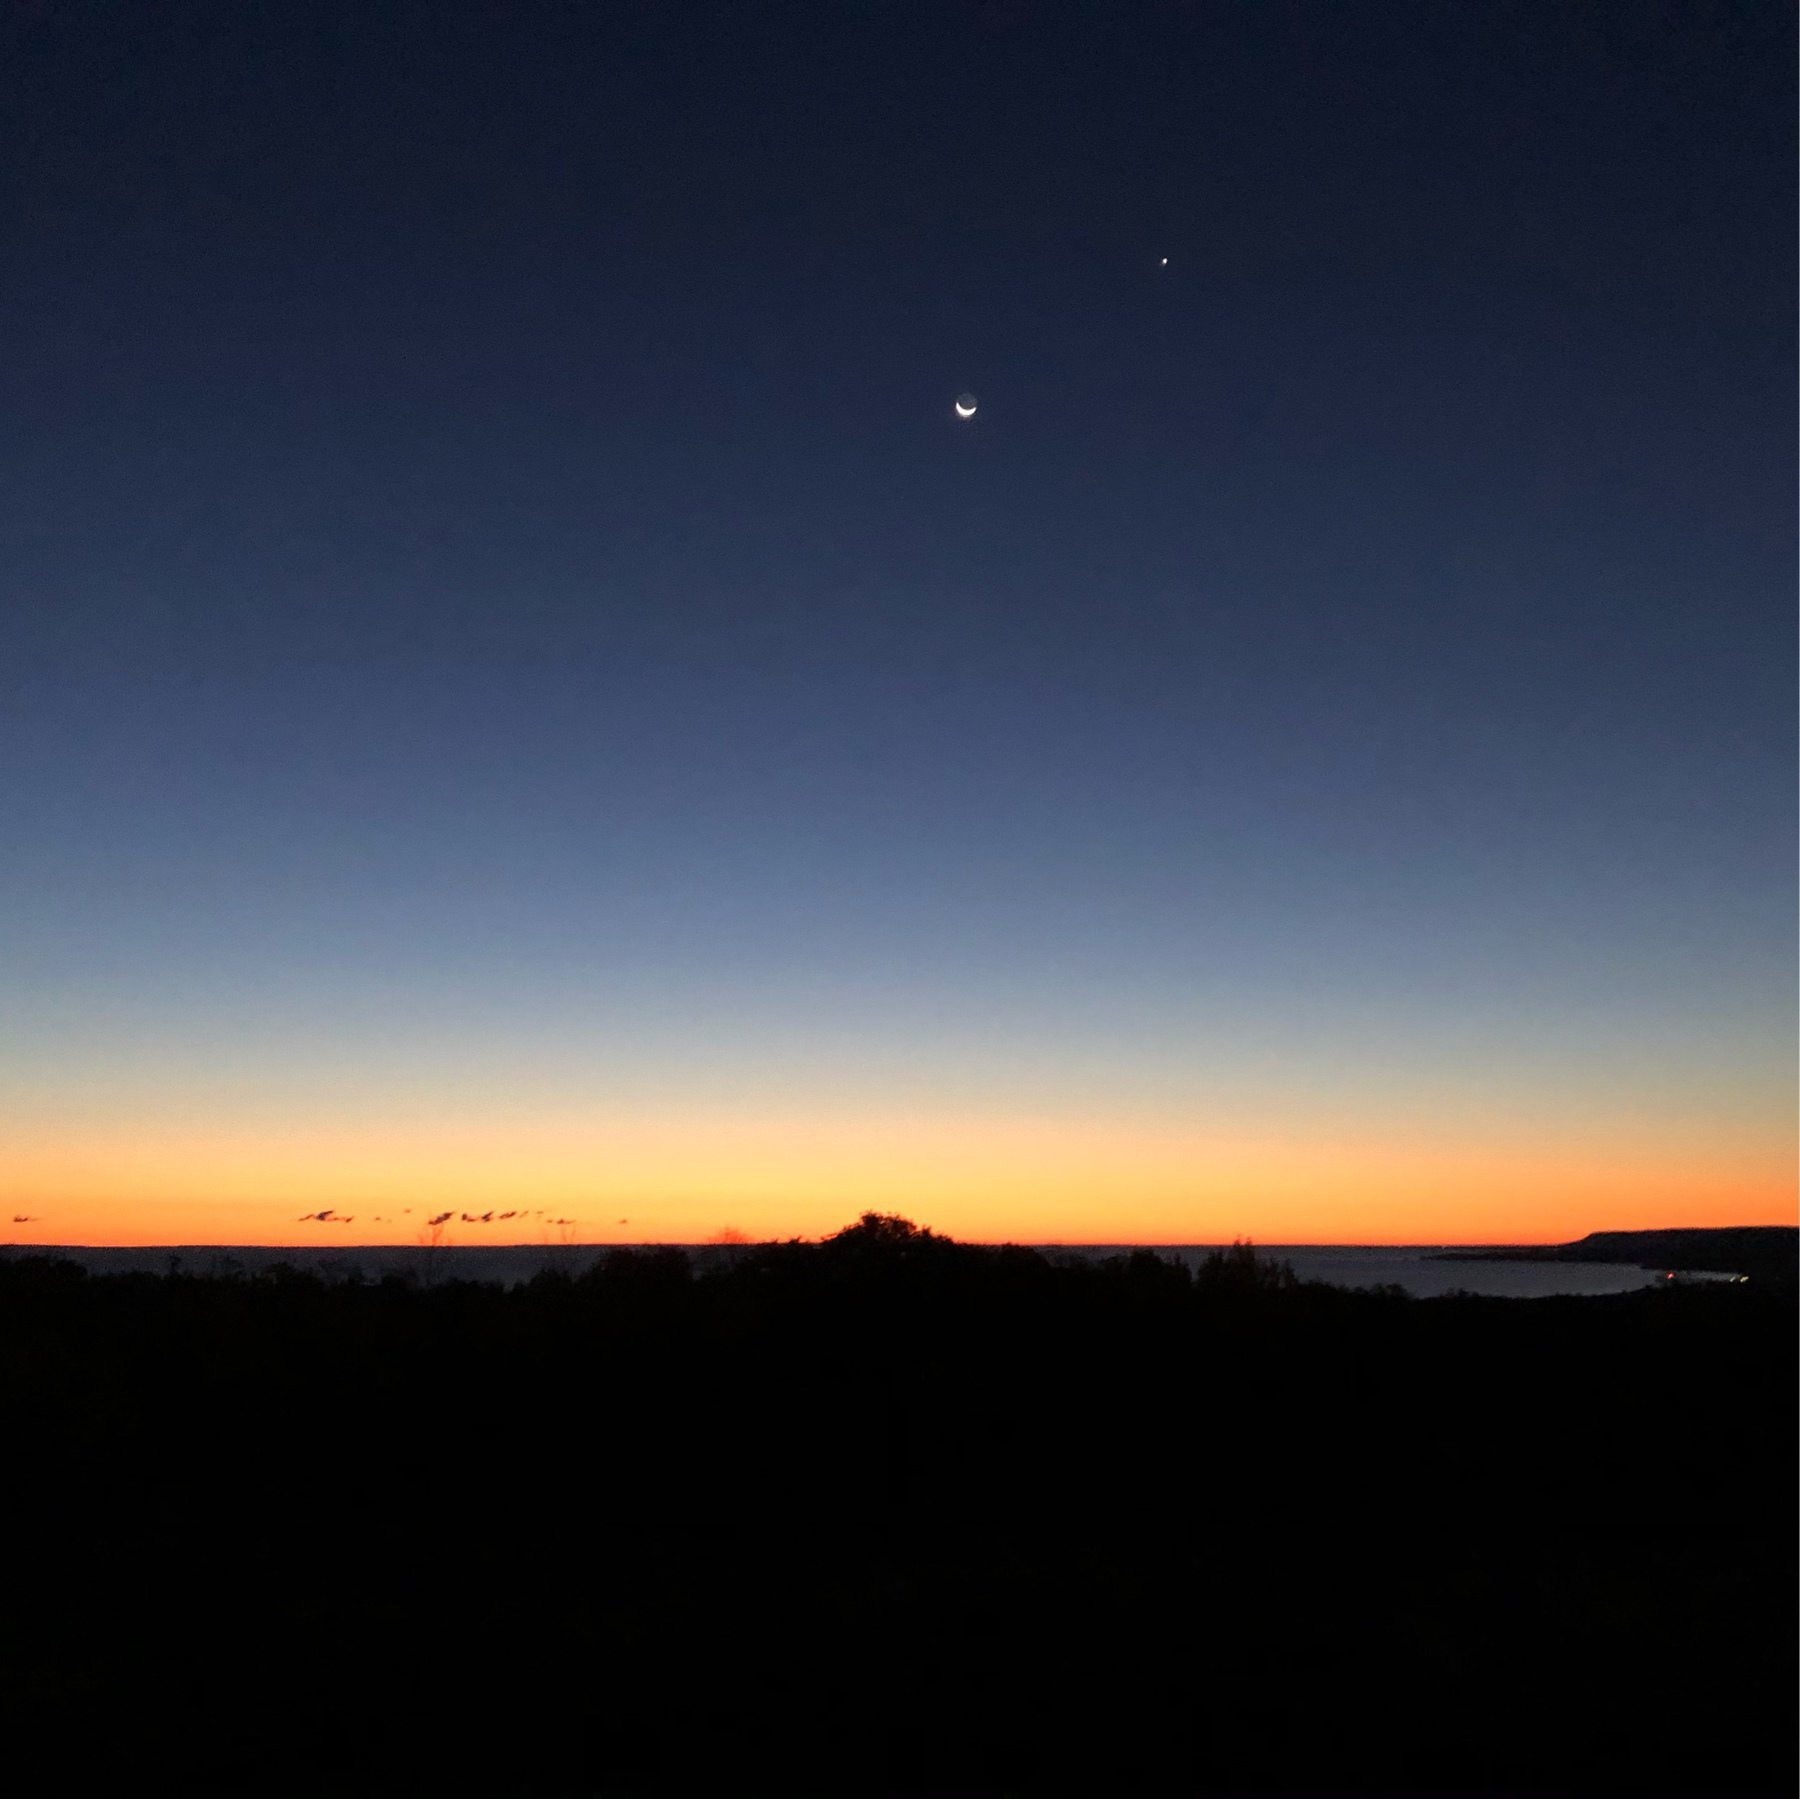 red sunrise over dark land and water. a crescent moon and bright star visible in the upper right